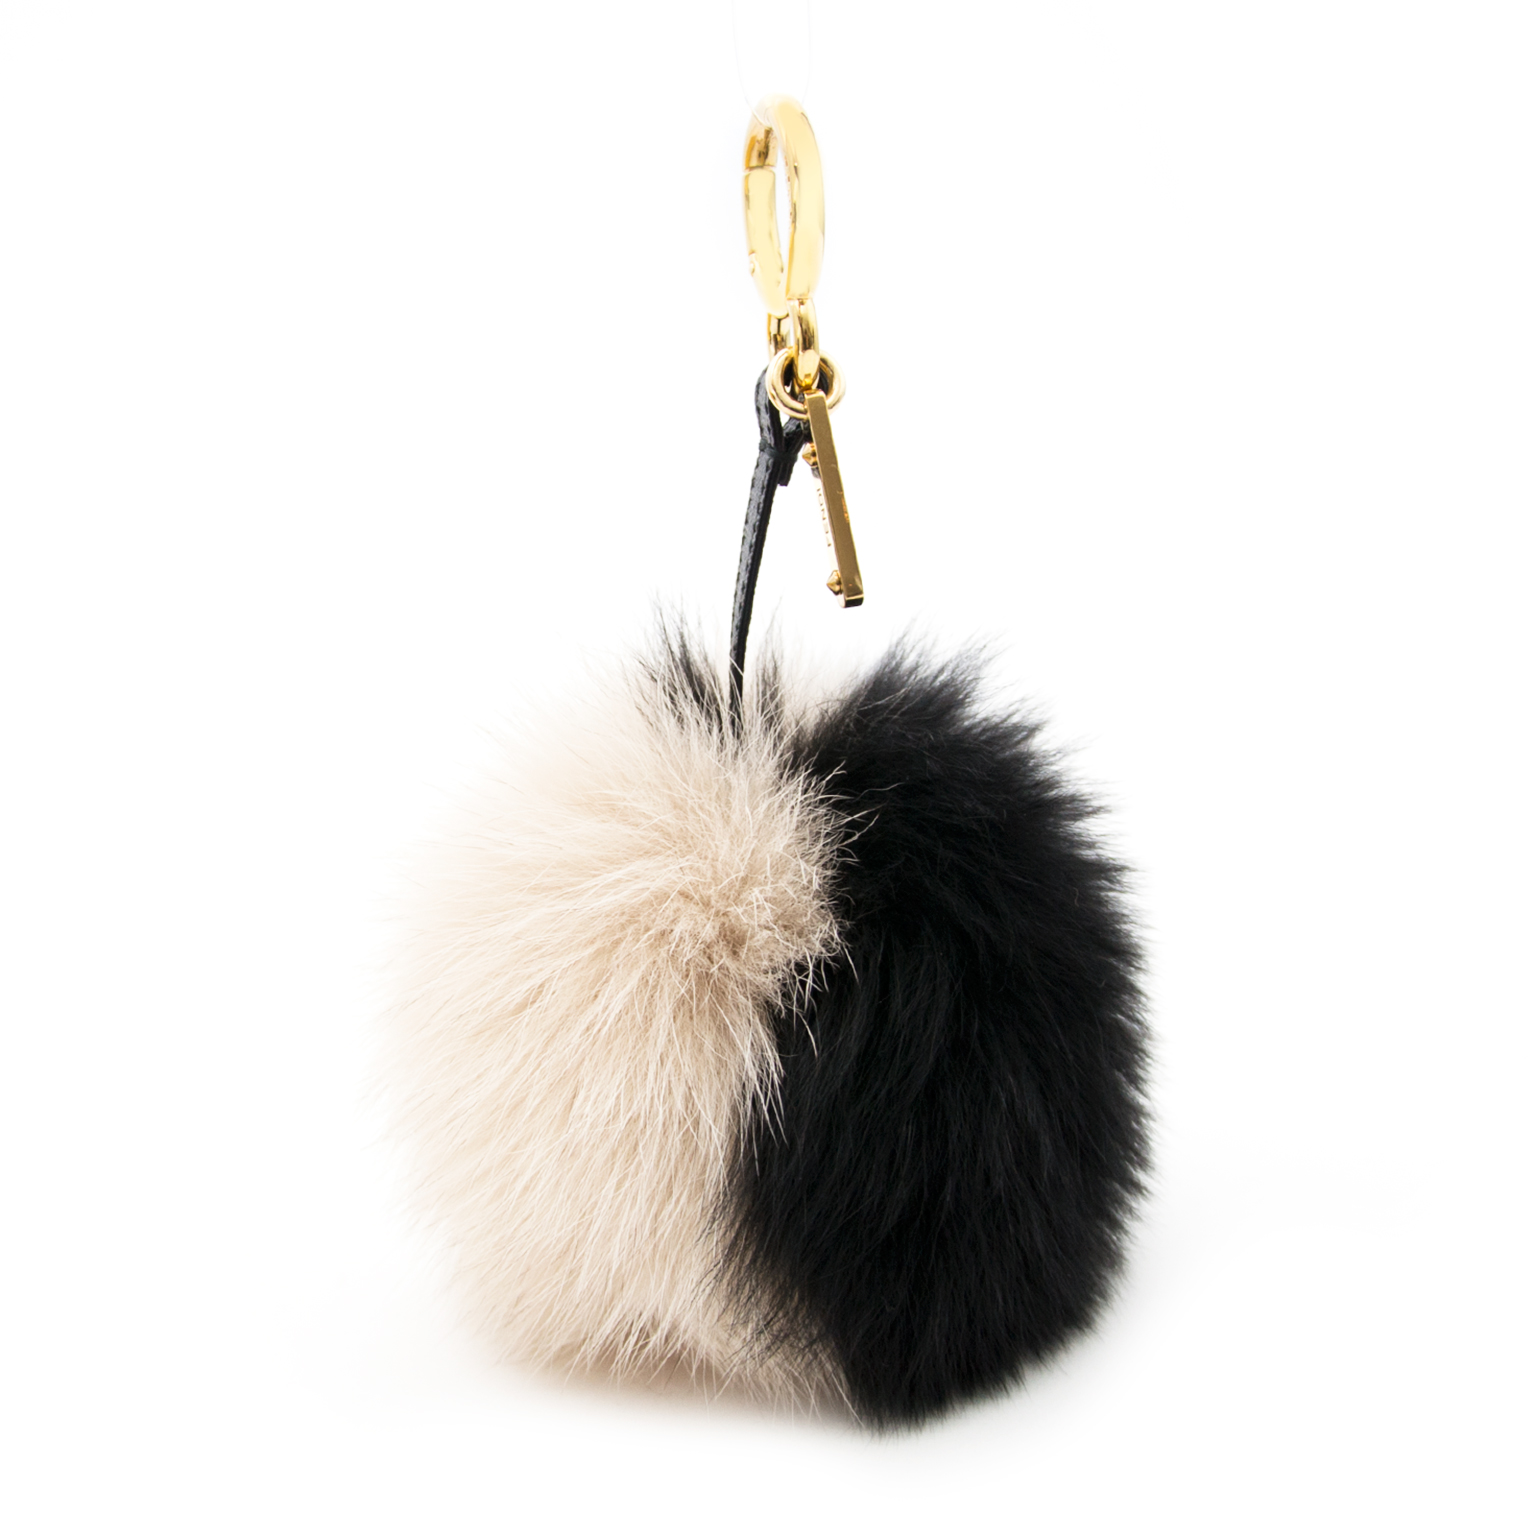 Buy authentic Fendi charms at Labellov.com